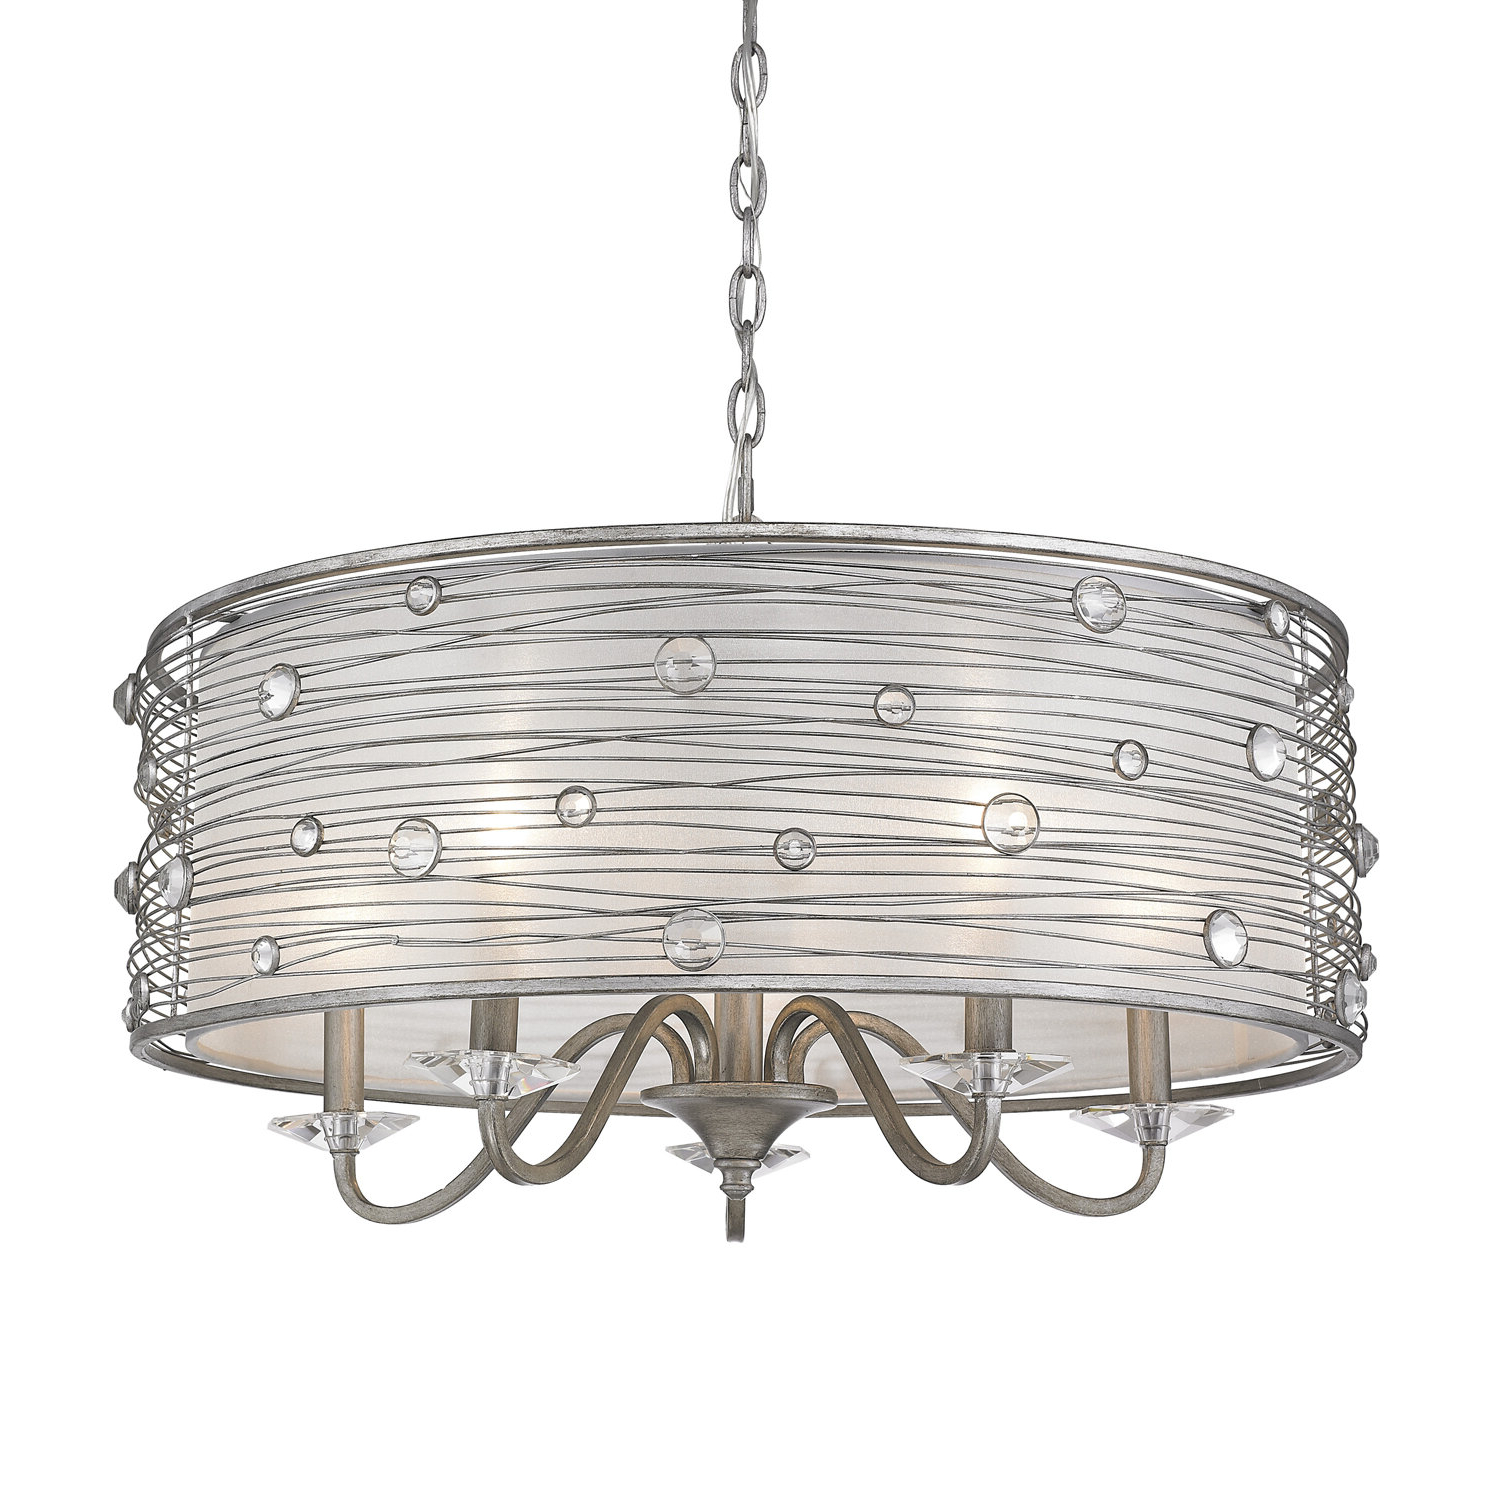 Hermione 5 Light Drum Chandelier Within Best And Newest Abel 5 Light Drum Chandeliers (Gallery 4 of 25)